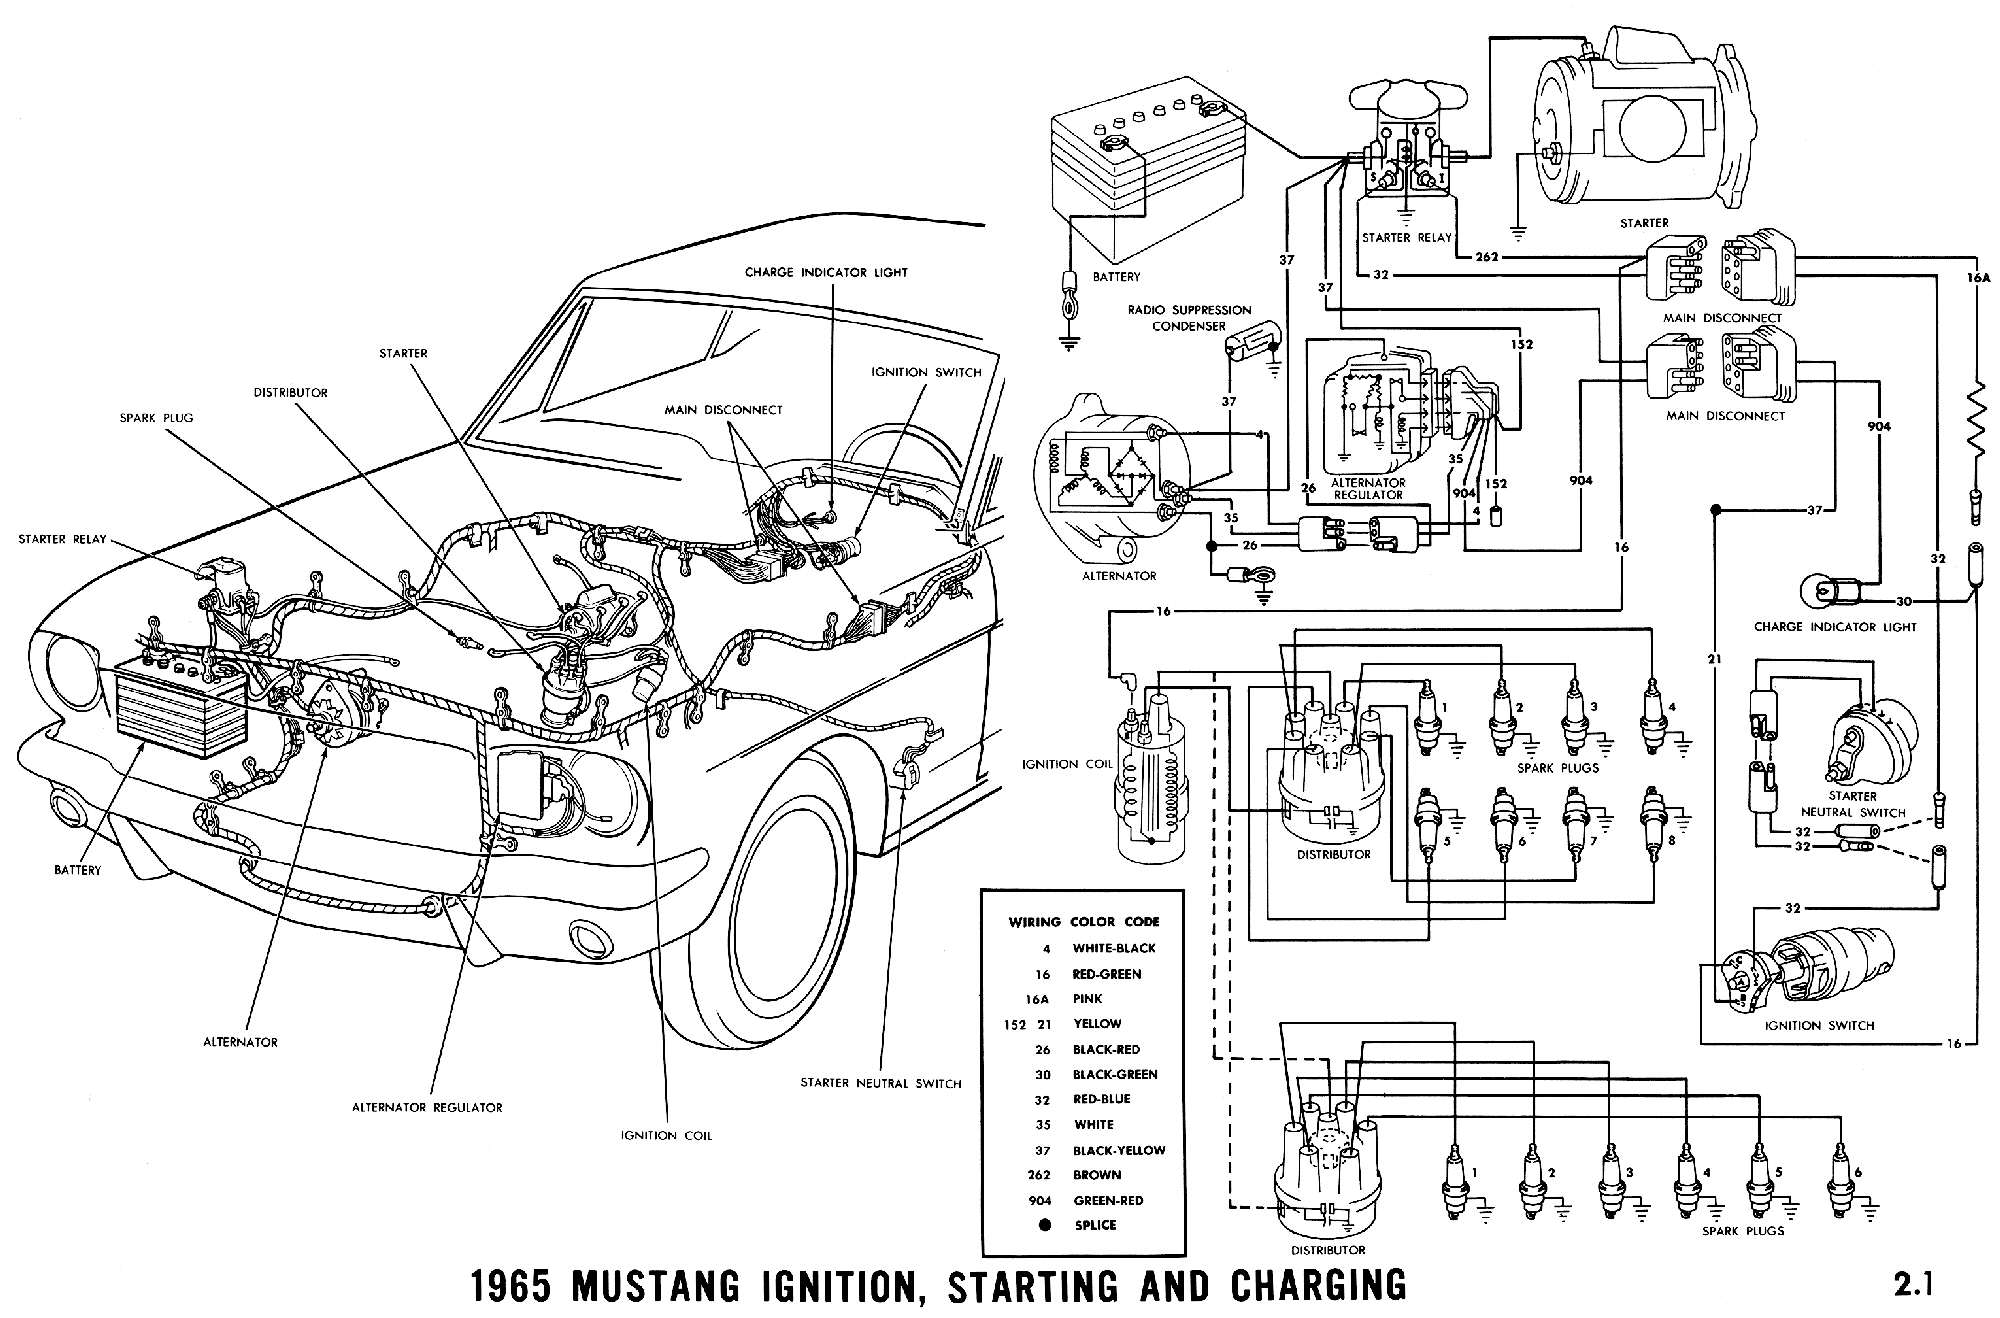 1965 Mustang Ignition, Starting and Charging Pictorial and Schematic